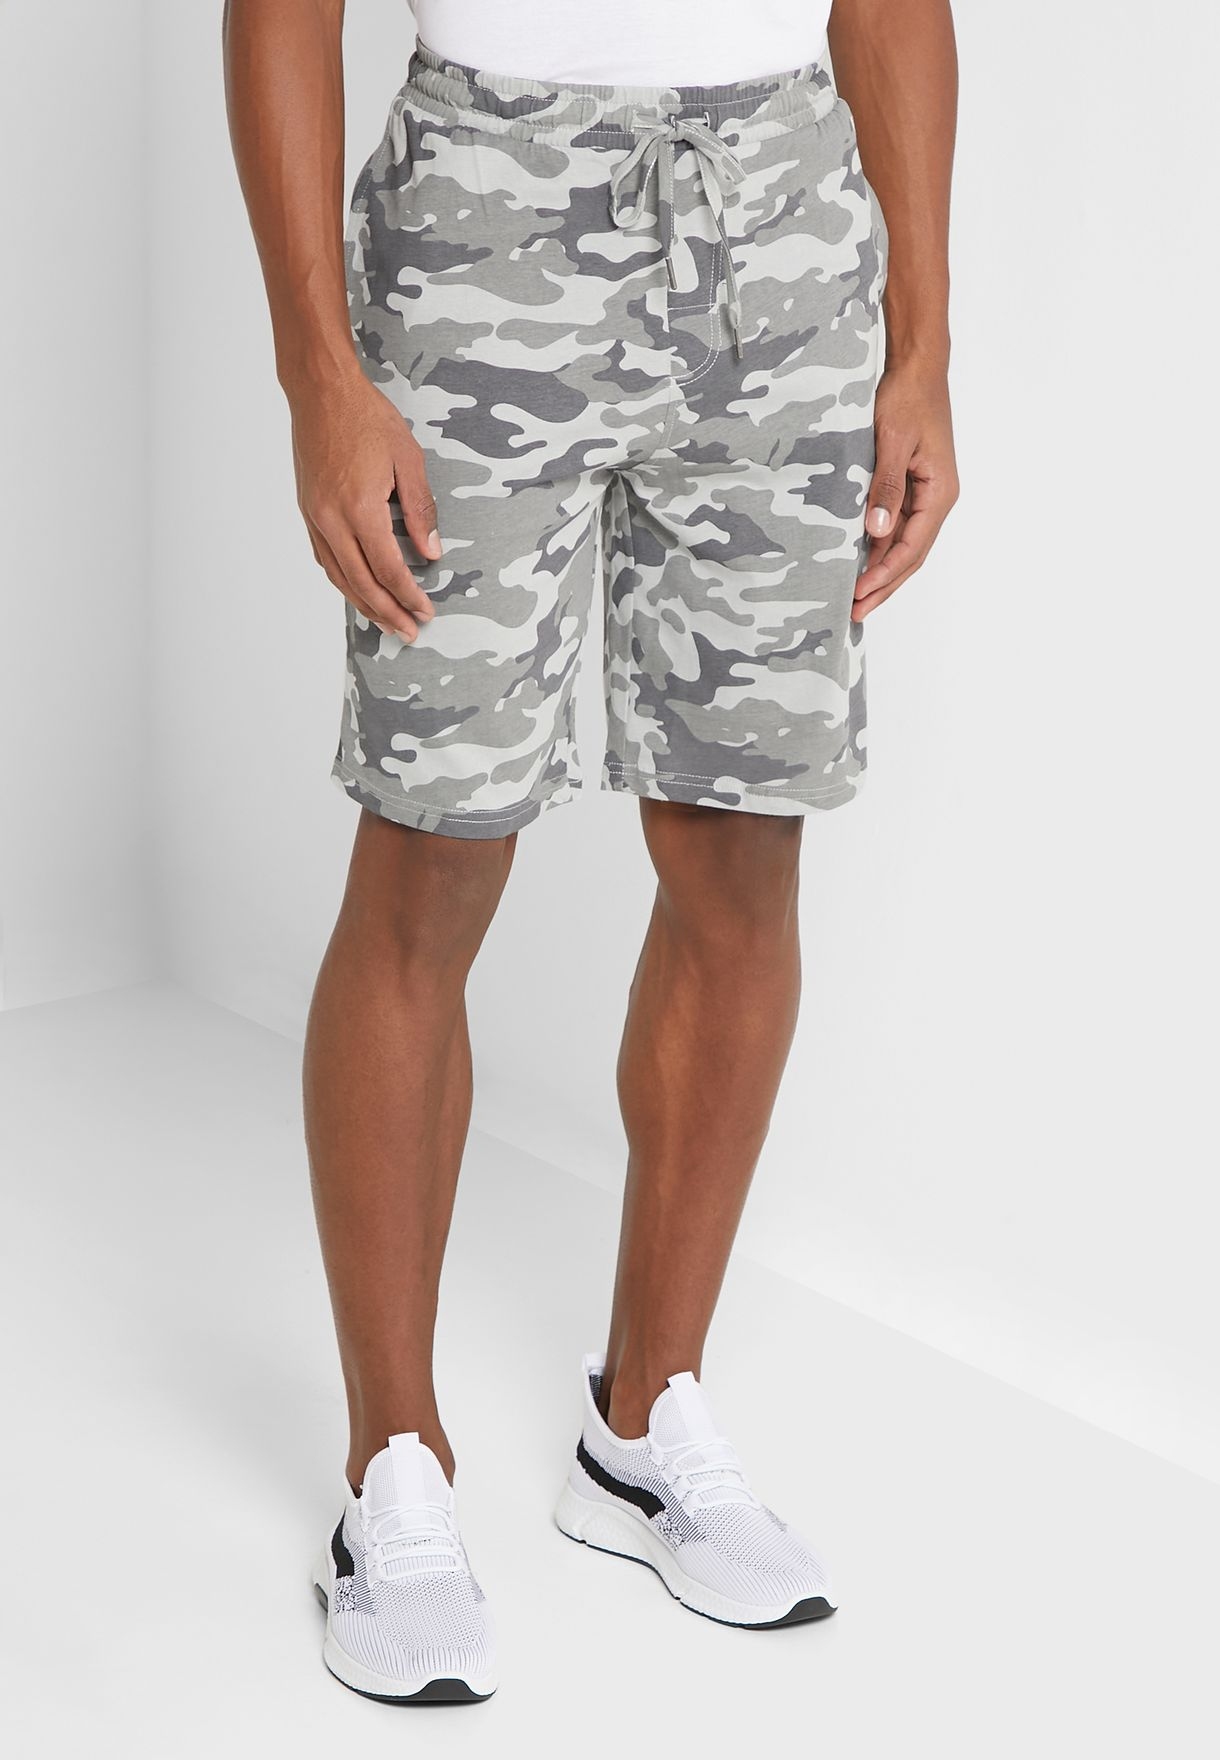 Men's Short With Printed Camo